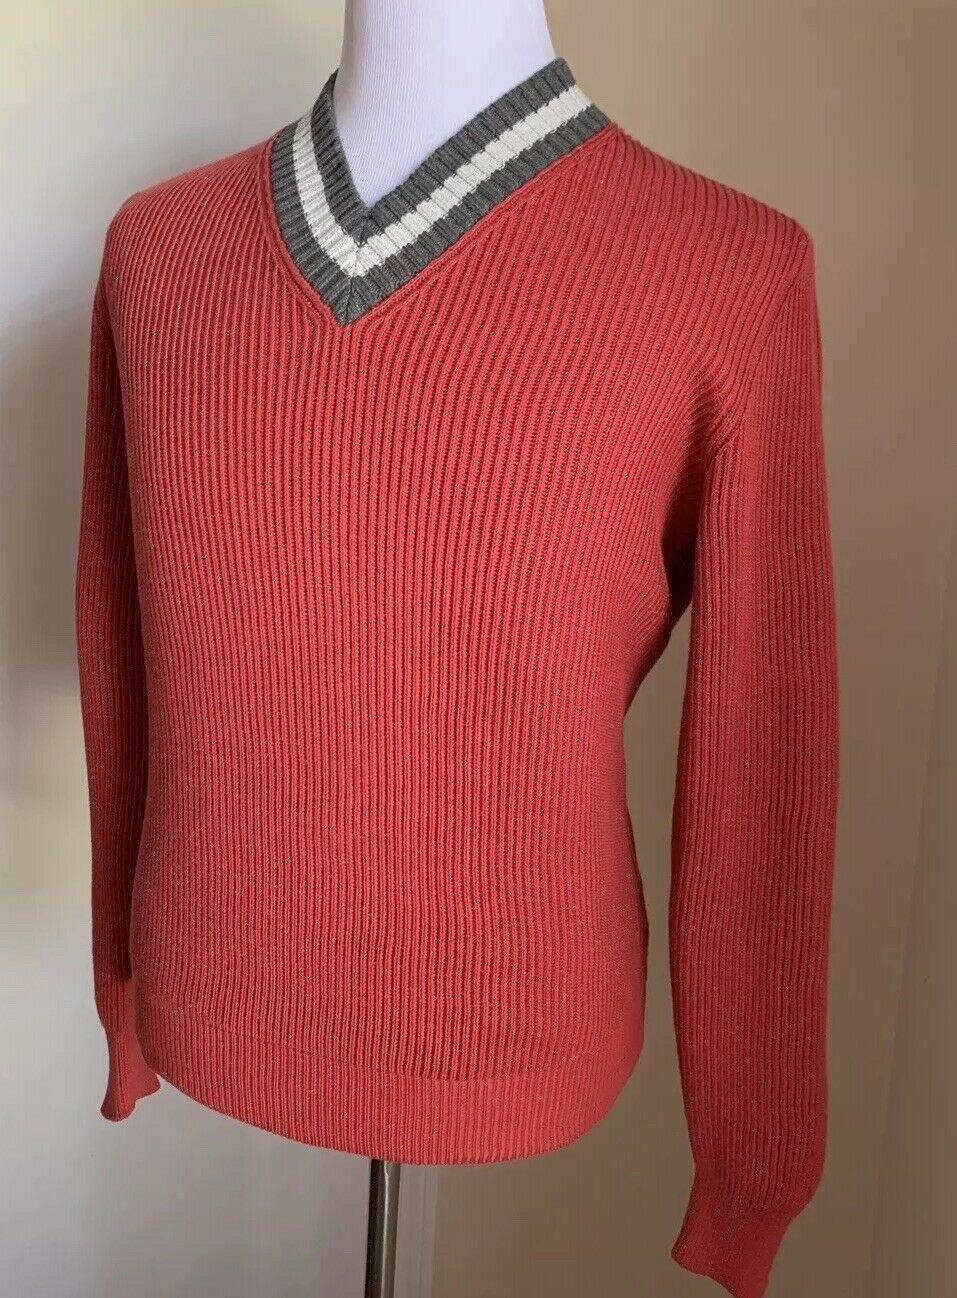 New $845 Brunello Cucinelli Men V-Neck Sweater Strawberry Red M ( 48 Eu ) Italy